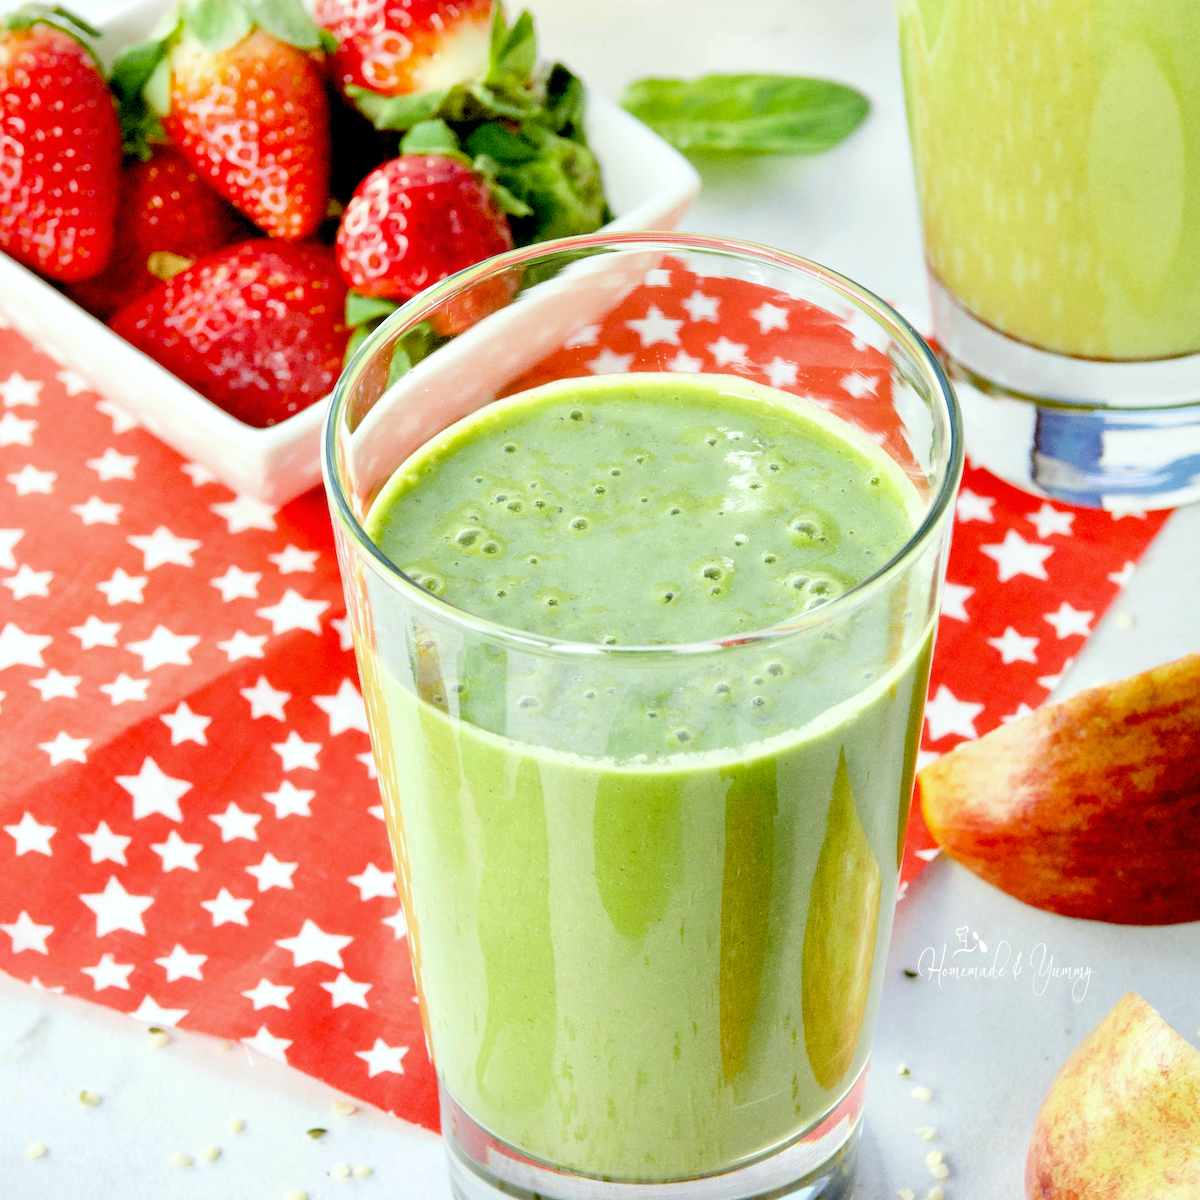 Healthy Hemp Heart Clean Green Smoothie Homemade Yummy